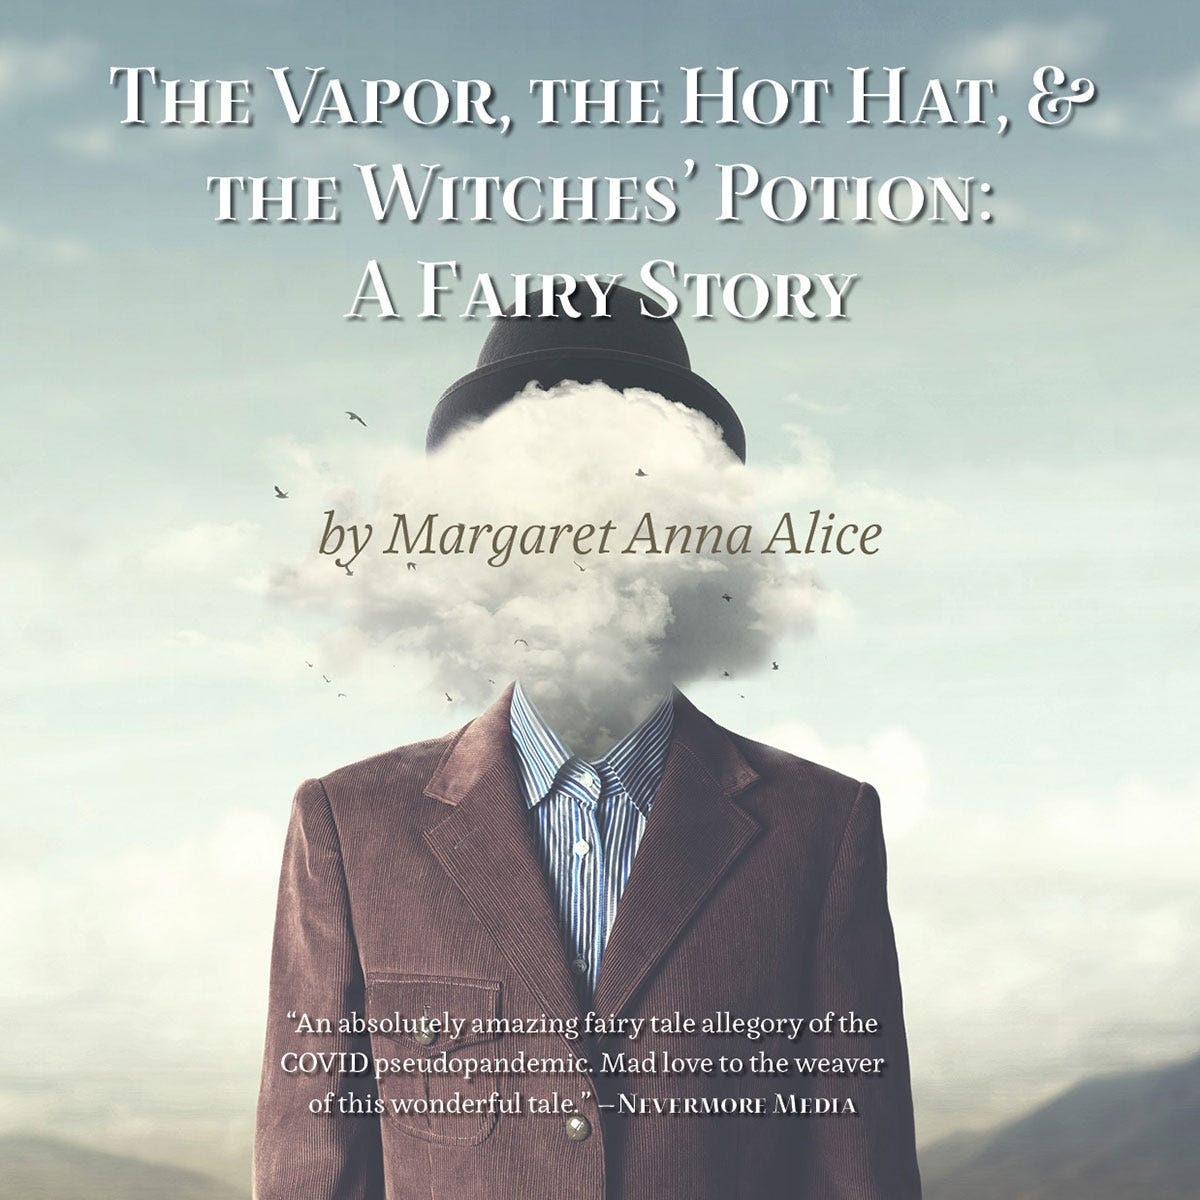 The Vapor, the Hot Hat, & the Witches' Potion: A Fairy Story (Book Cover)